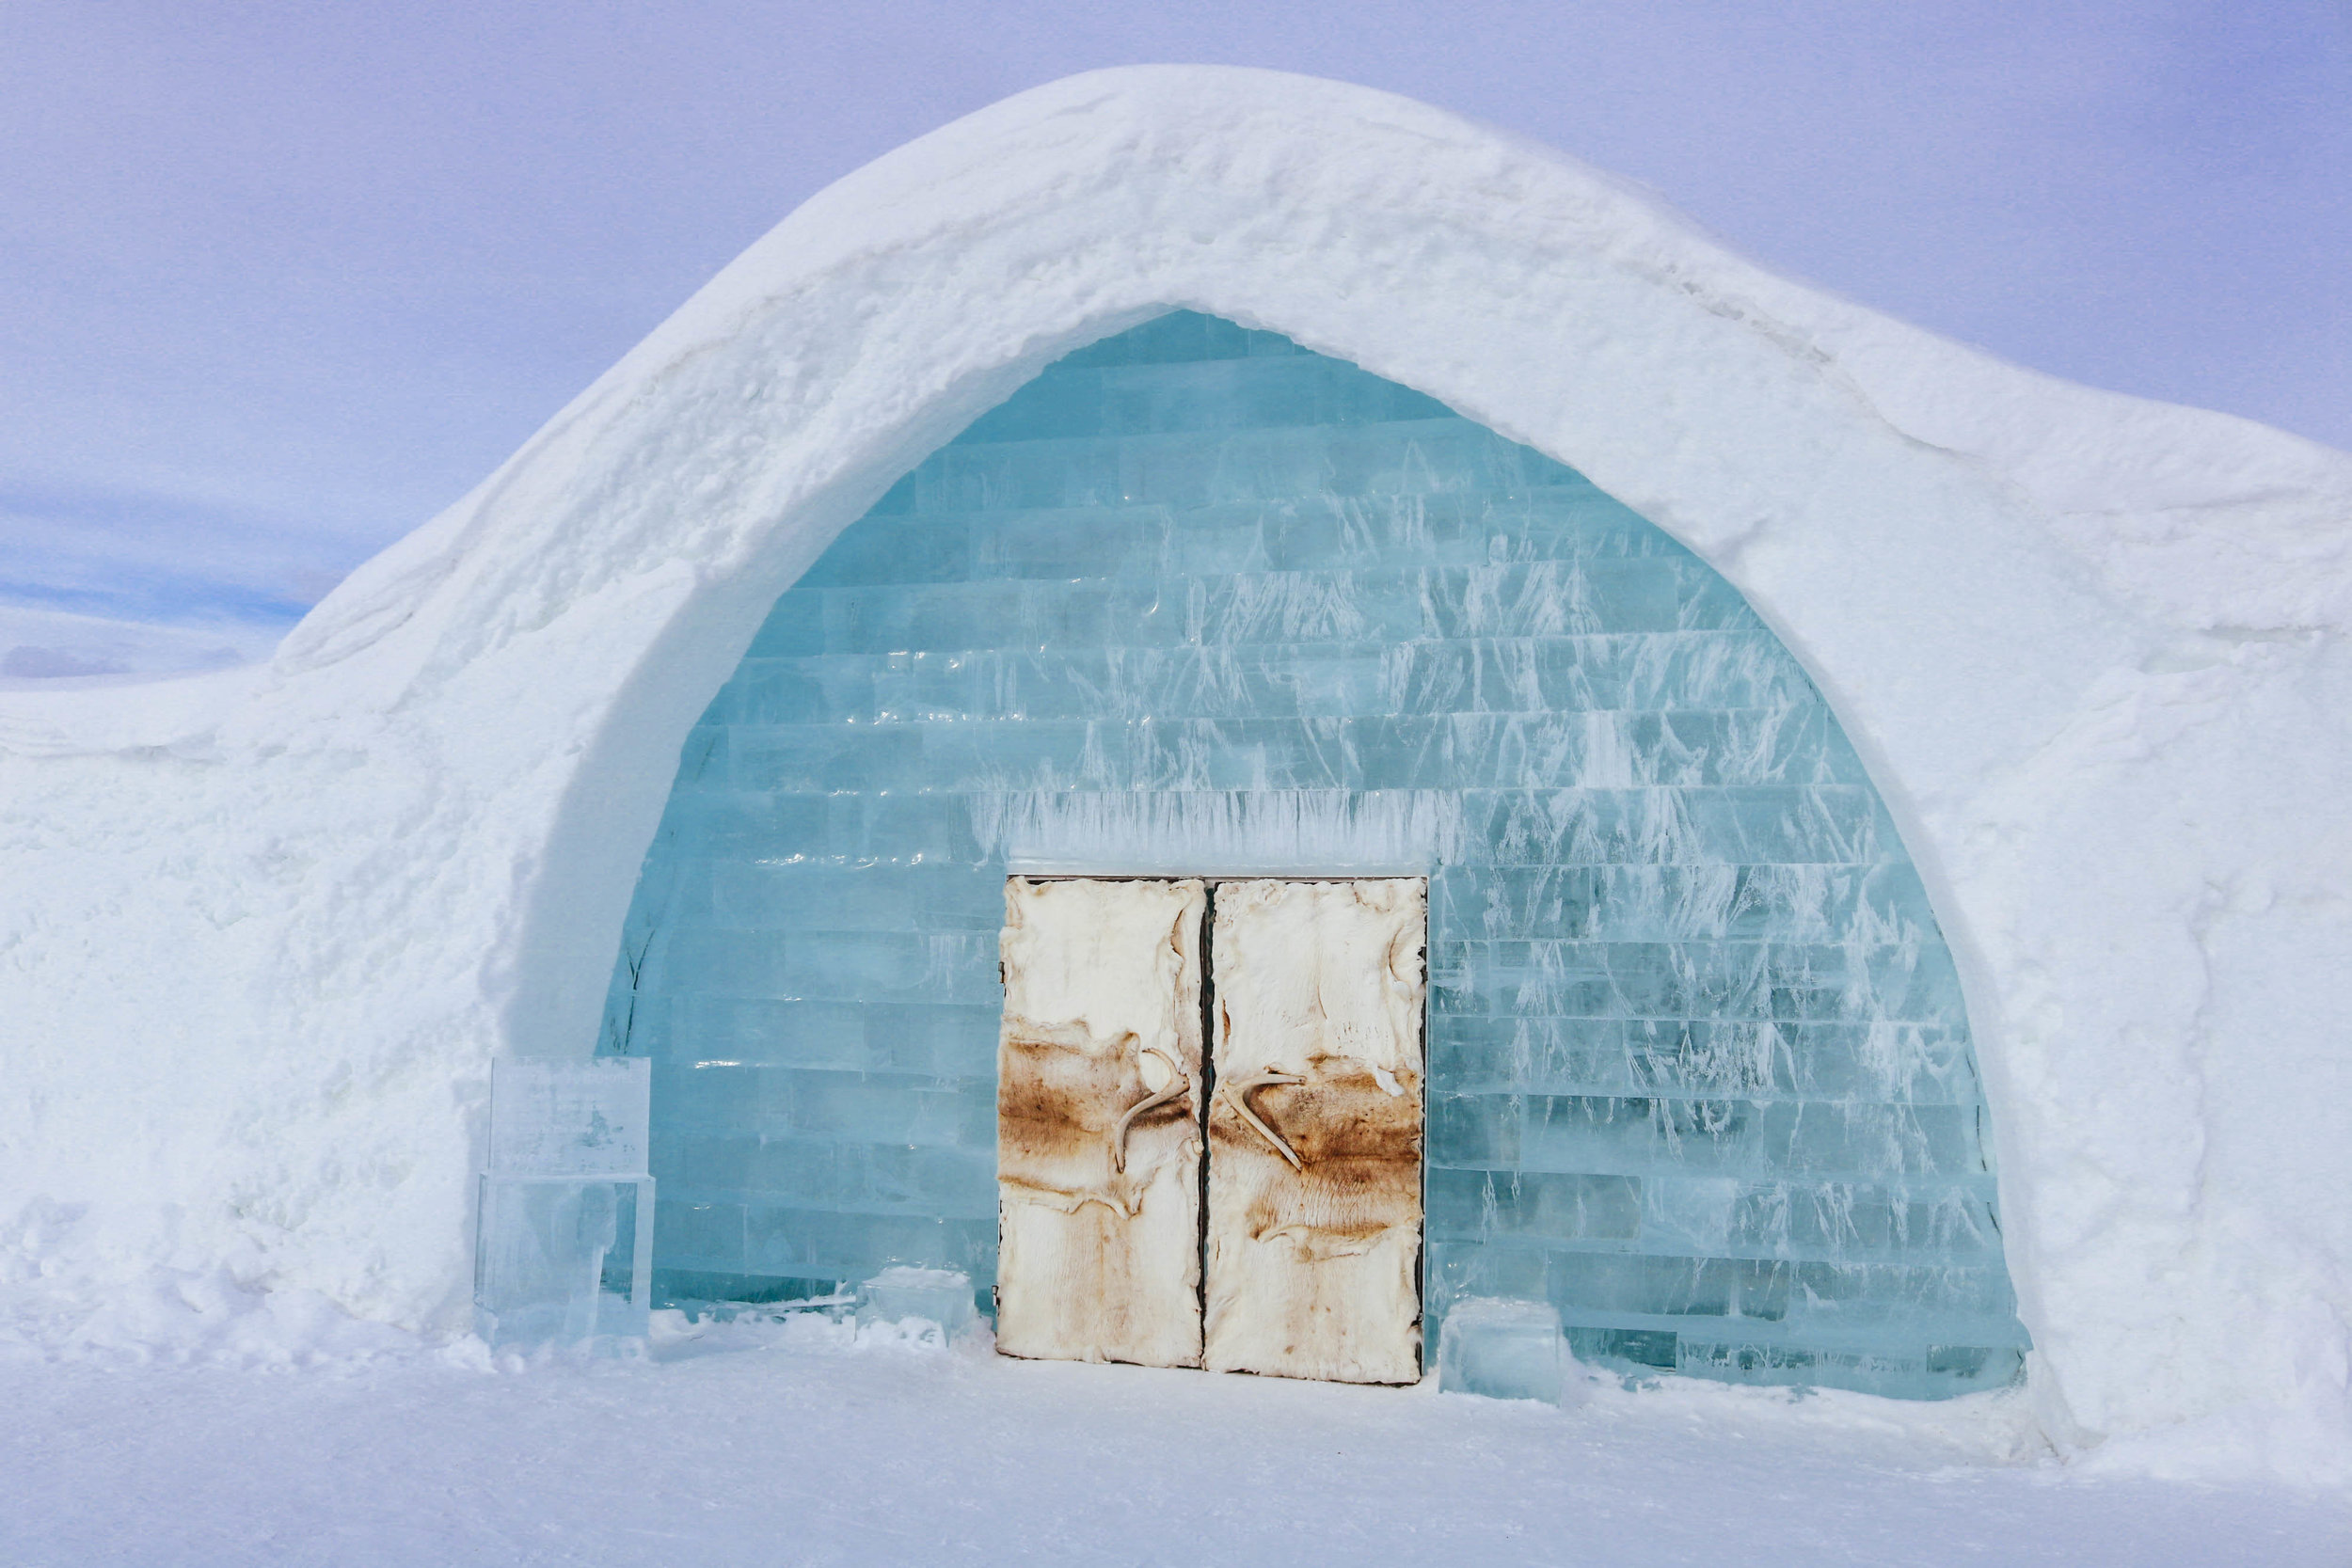 The 27th Icehotel. Now, it has all melted and the ice went back to where it came from: the river Torne in the little village of Jukkasjärvi in Swedish Lapland.